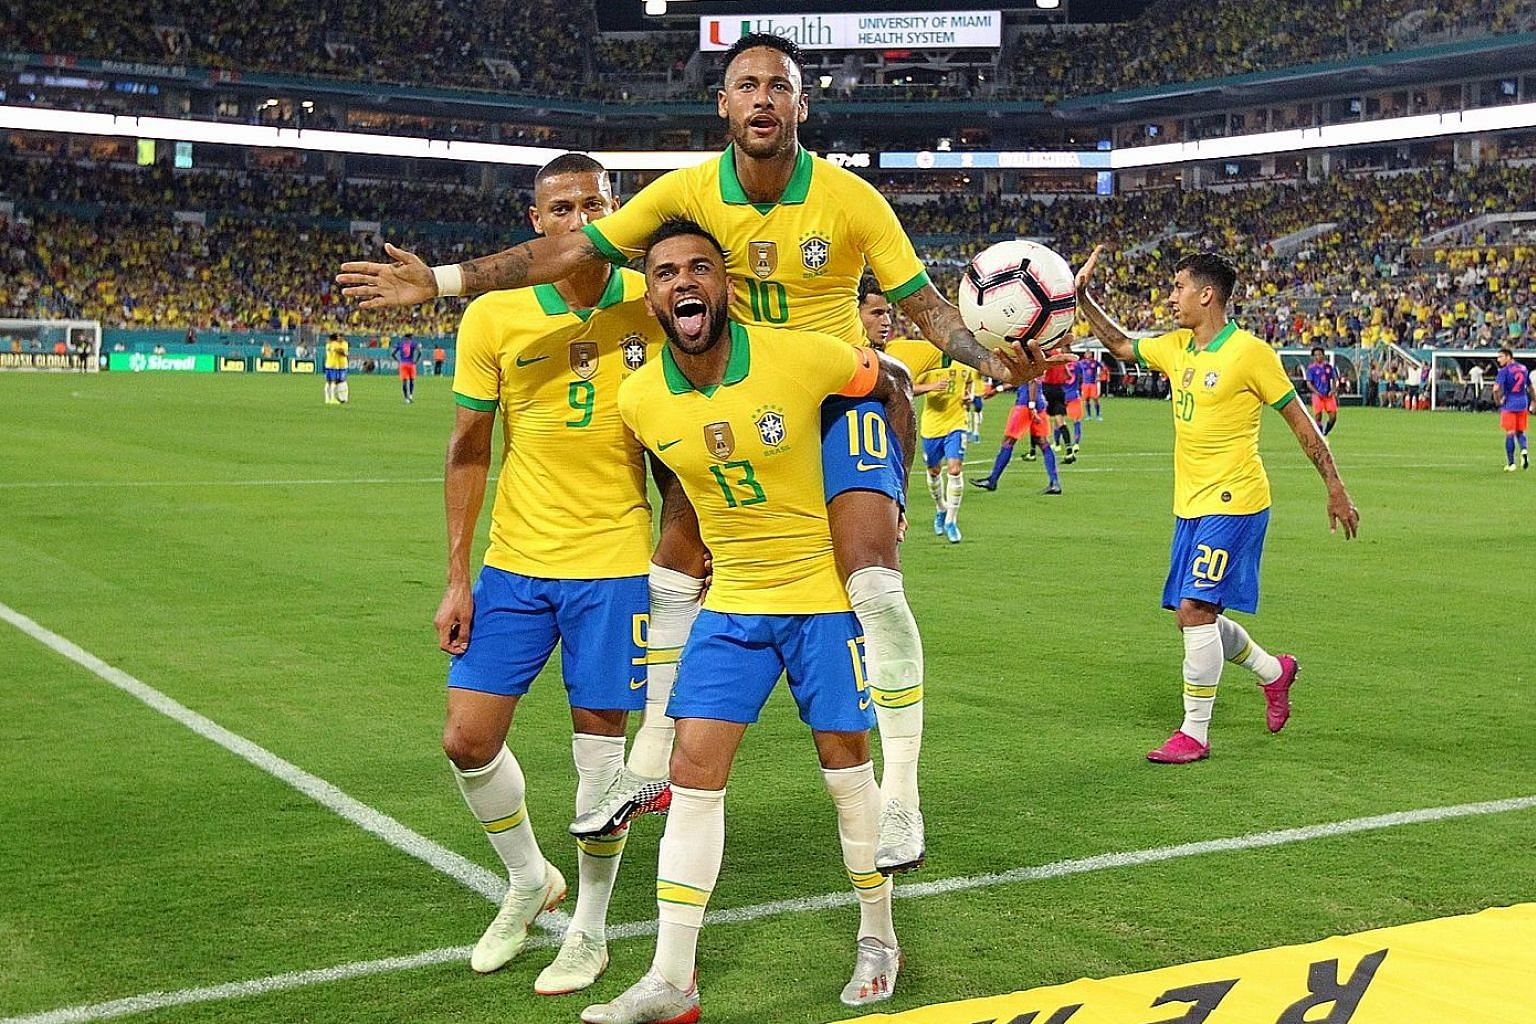 Brazil's Neymar (No. 10) celebrating with Dani Alves and teammates after scoring his side's second goal during the 2-2 friendly draw with Colombia at the Hard Rock Stadium, Florida, earlier this month. The flamboyant forward scored all four goals in